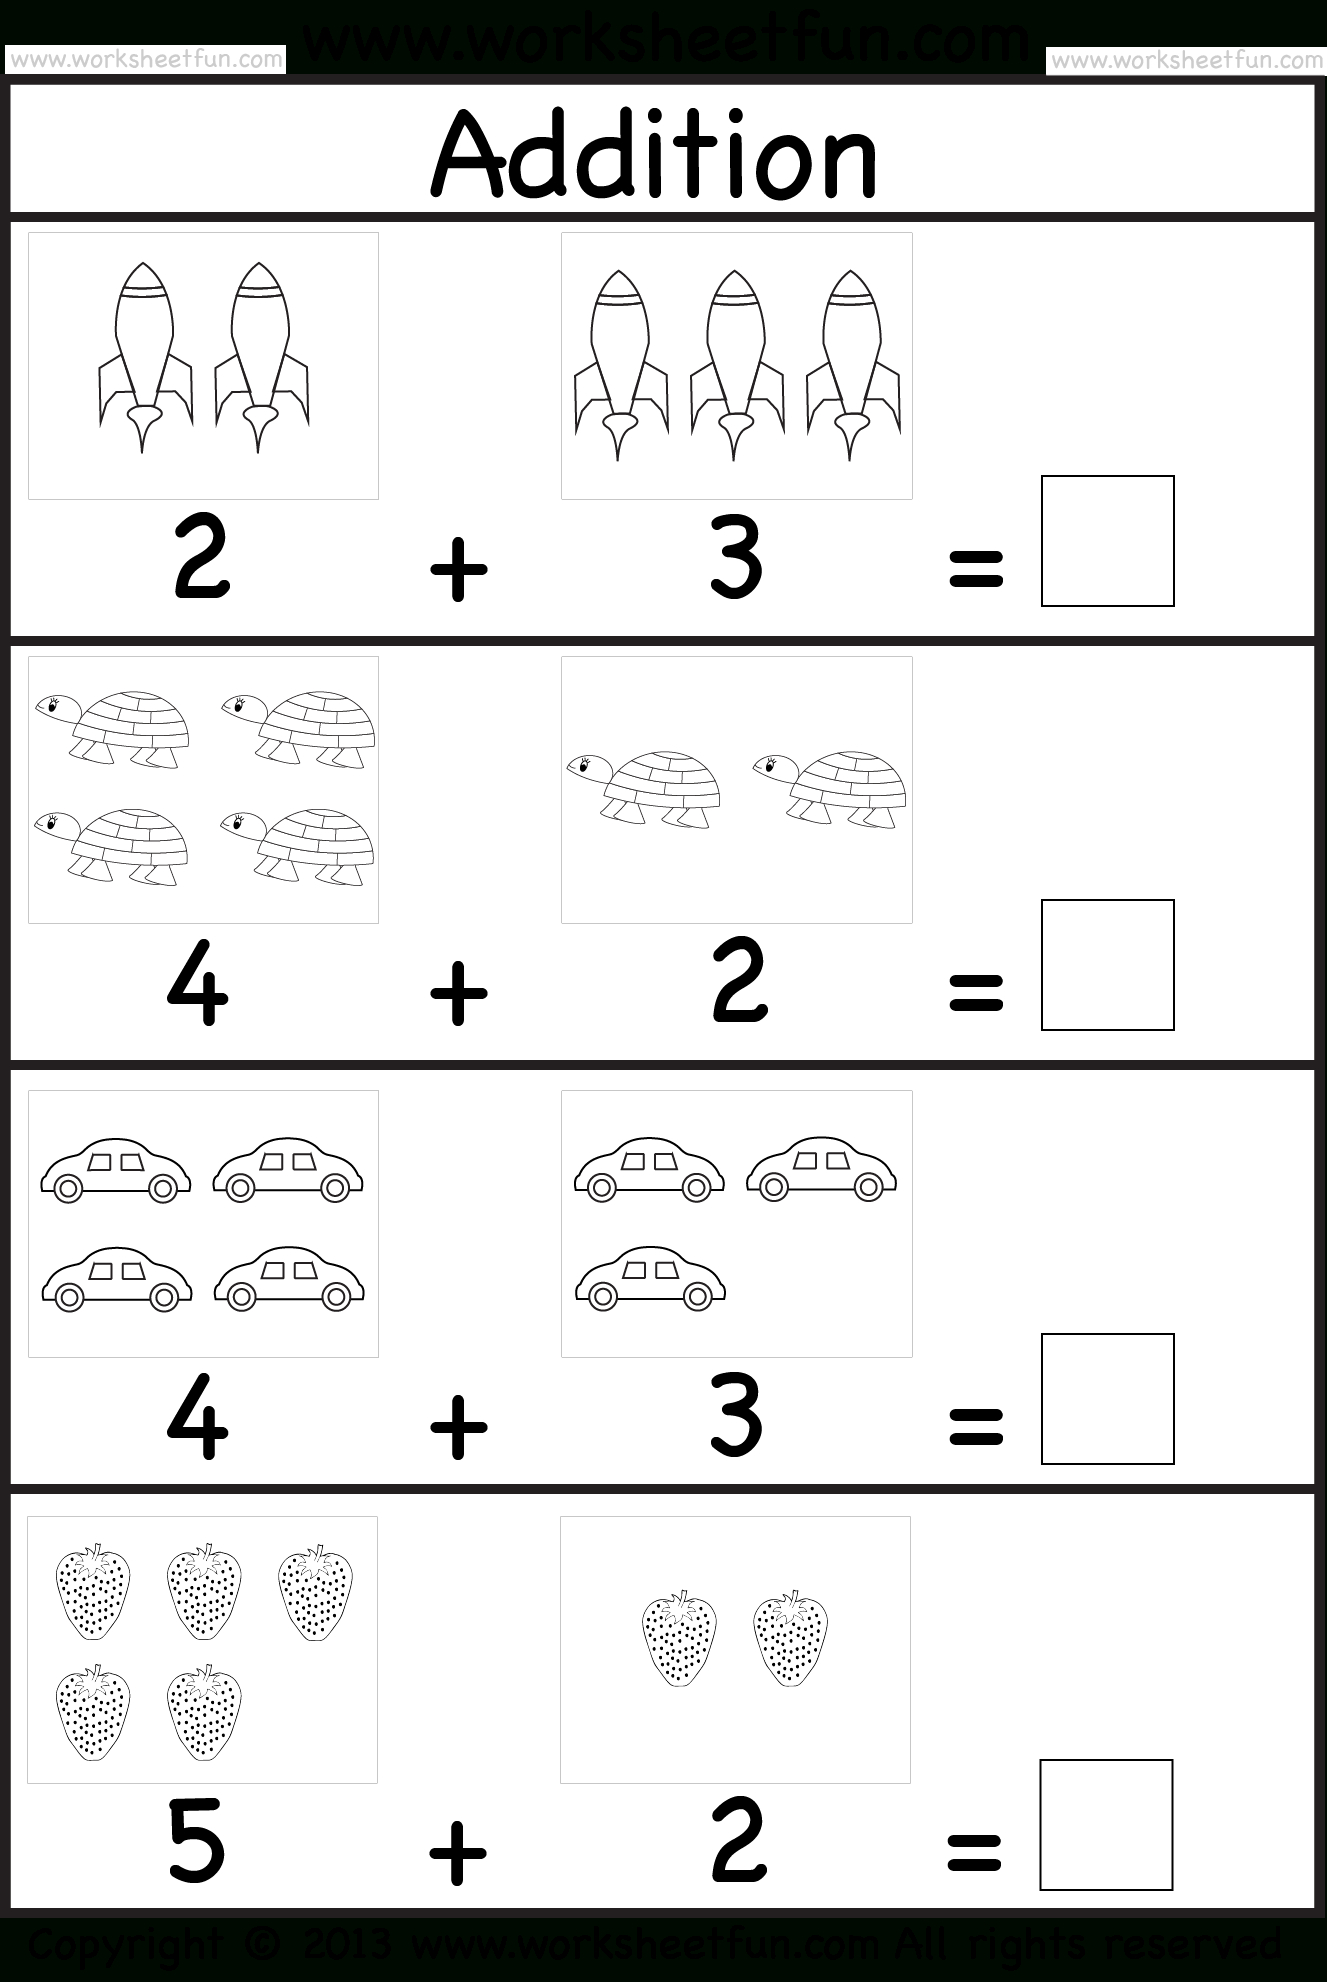 Addition Worksheet. This Site Has Great Free Worksheets For | Printable Worksheets For 5 Year Olds